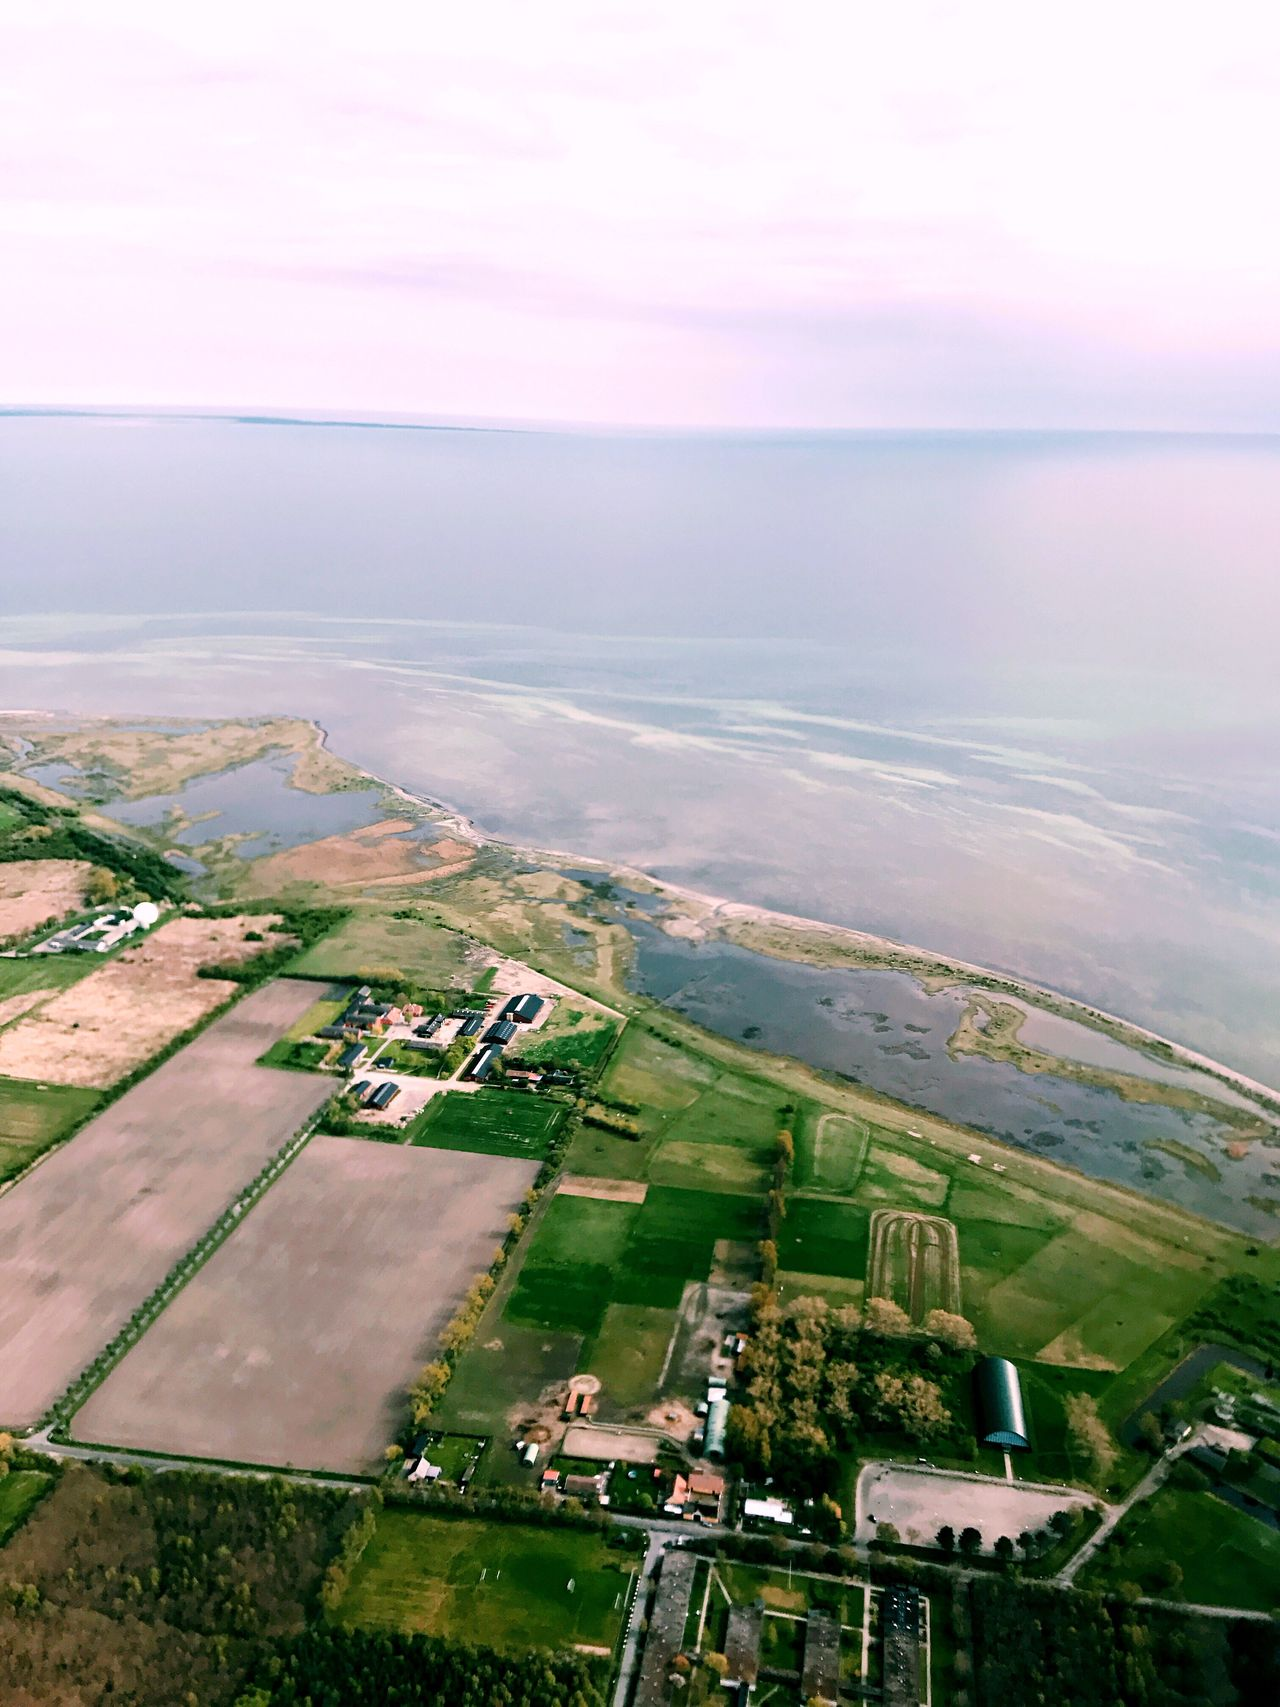 Taking off from Kastrup in Copenhagen. Tranquil Scene Beauty In Nature Scenics Landscape Nature Tranquility Agriculture Rural Scene Aerial View Idyllic Field Sky No People Patchwork Landscape Outdoors Building Exterior Day Built Structure Architecture Water From Above  From A Moving Vehicle Airplane